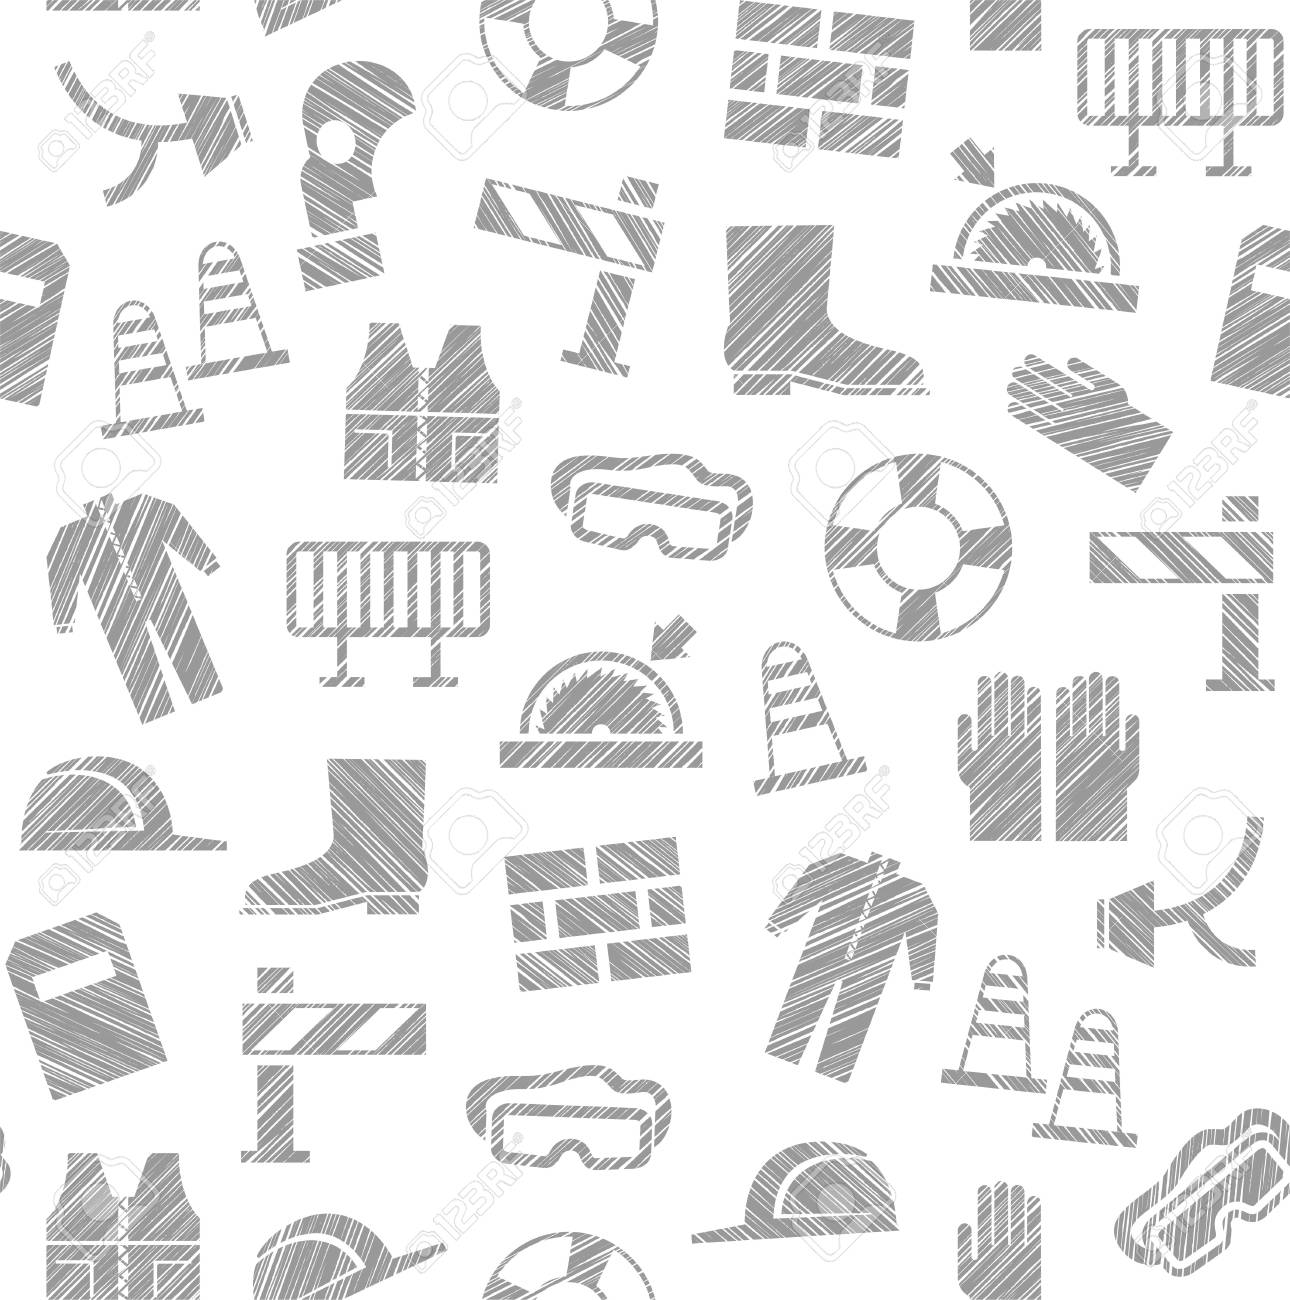 Labor Safety Safety At Work Labor Protection Seamless Pattern White Pencil